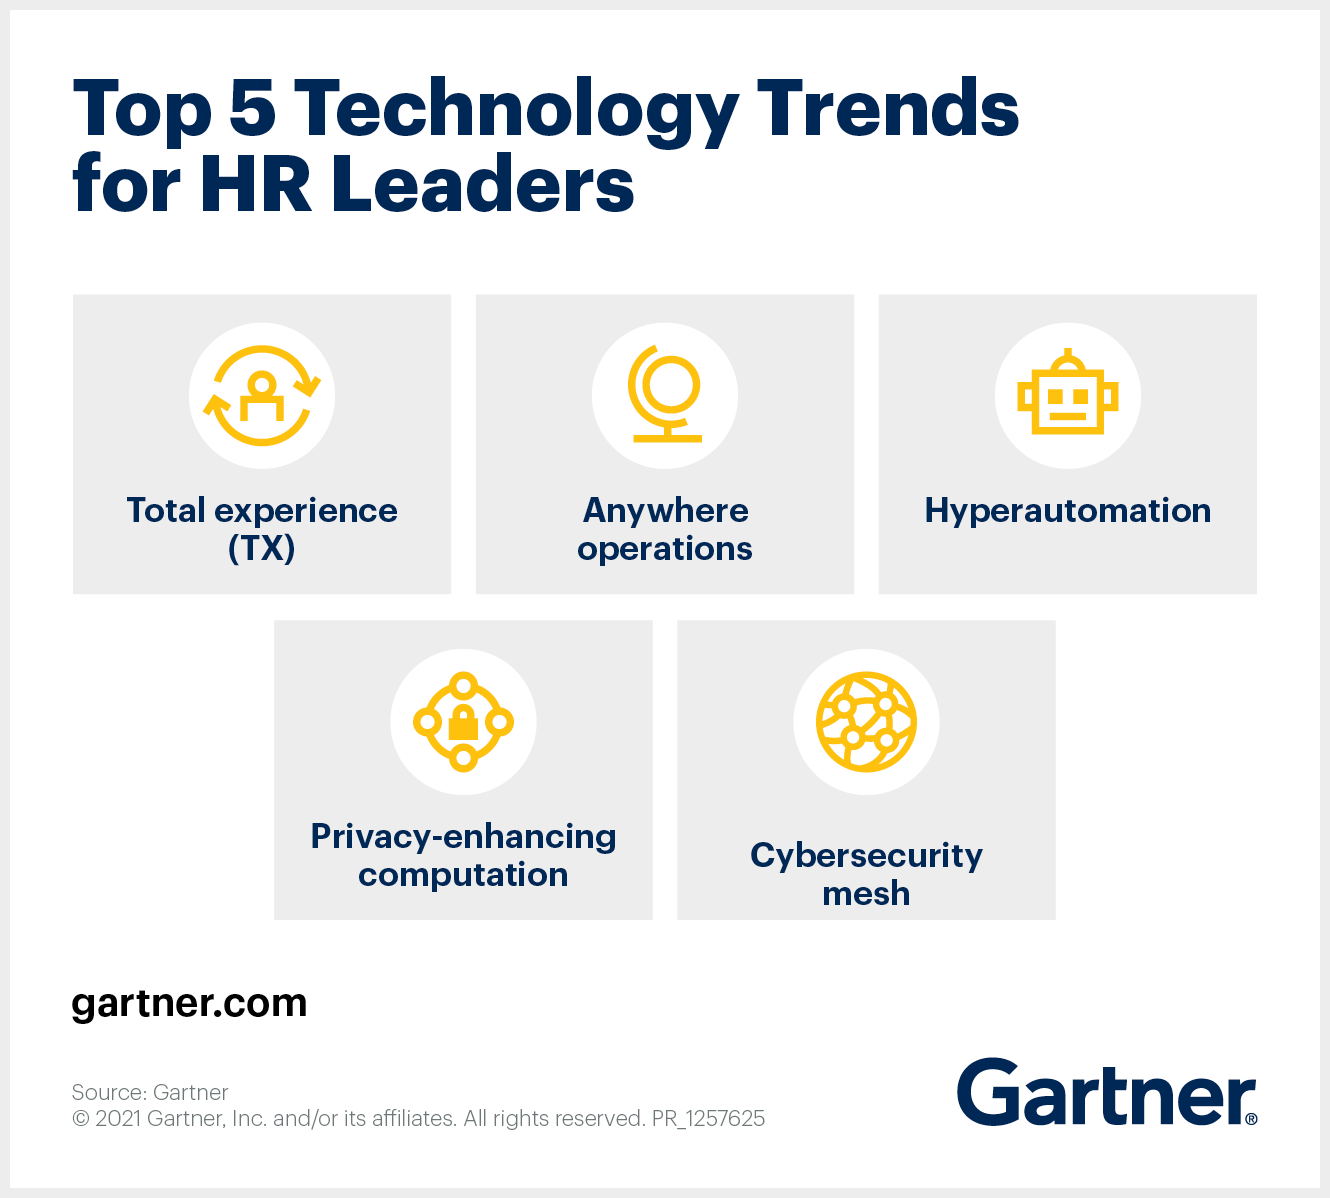 Top 5 Strategic Technology Trends for HR